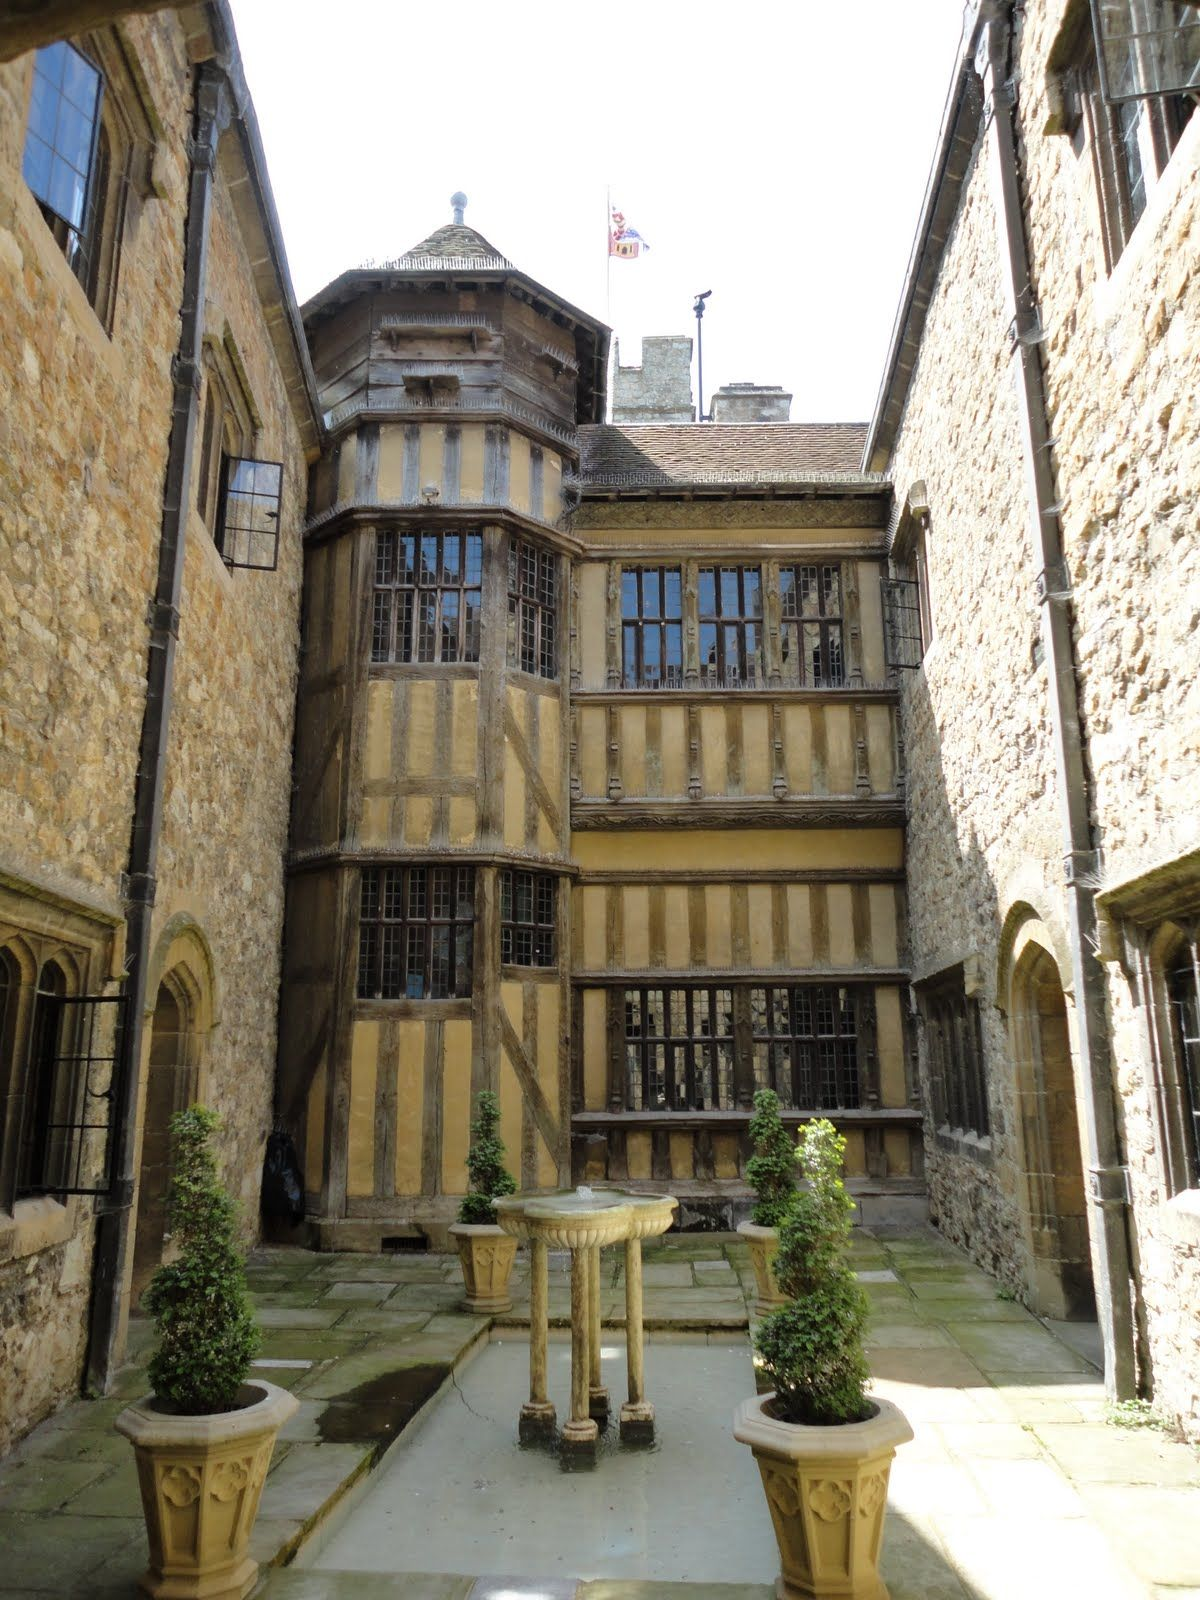 leeds castle interior | from dungeons to drawbridges, leeds is an